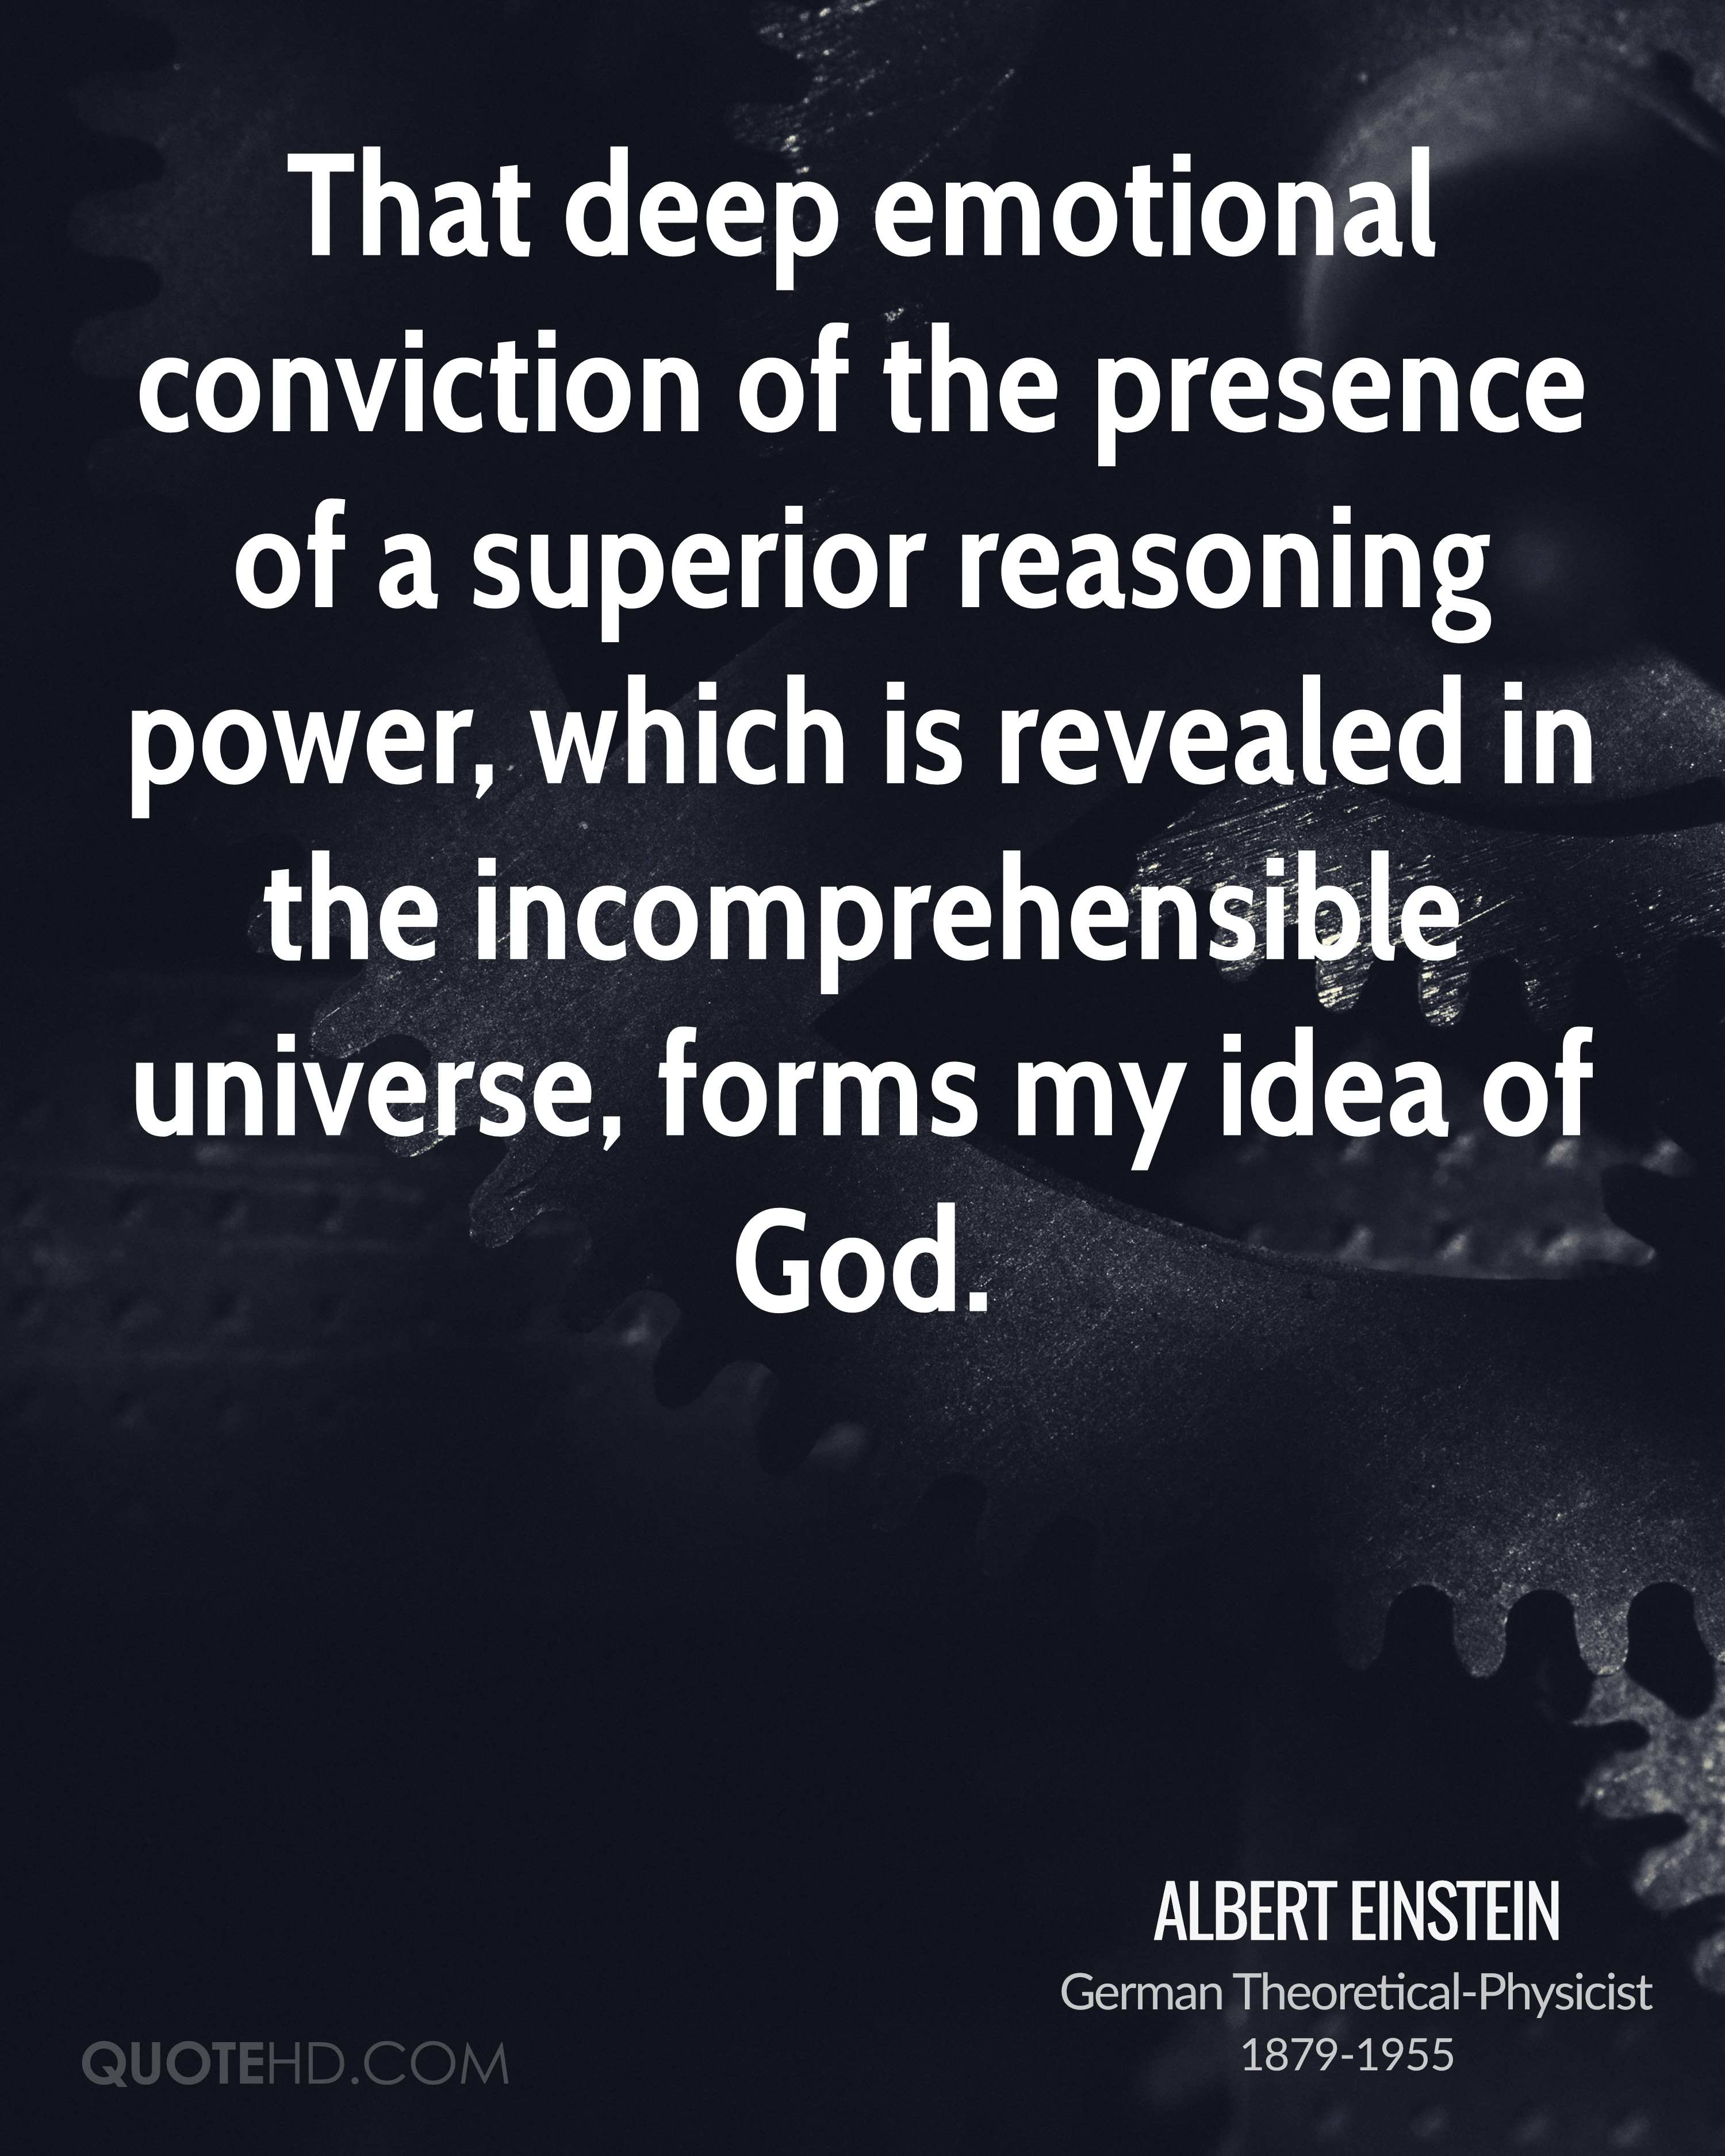 That deep emotional conviction of the presence of a superior reasoning power, which is revealed in the incomprehensible universe, forms my idea of God.